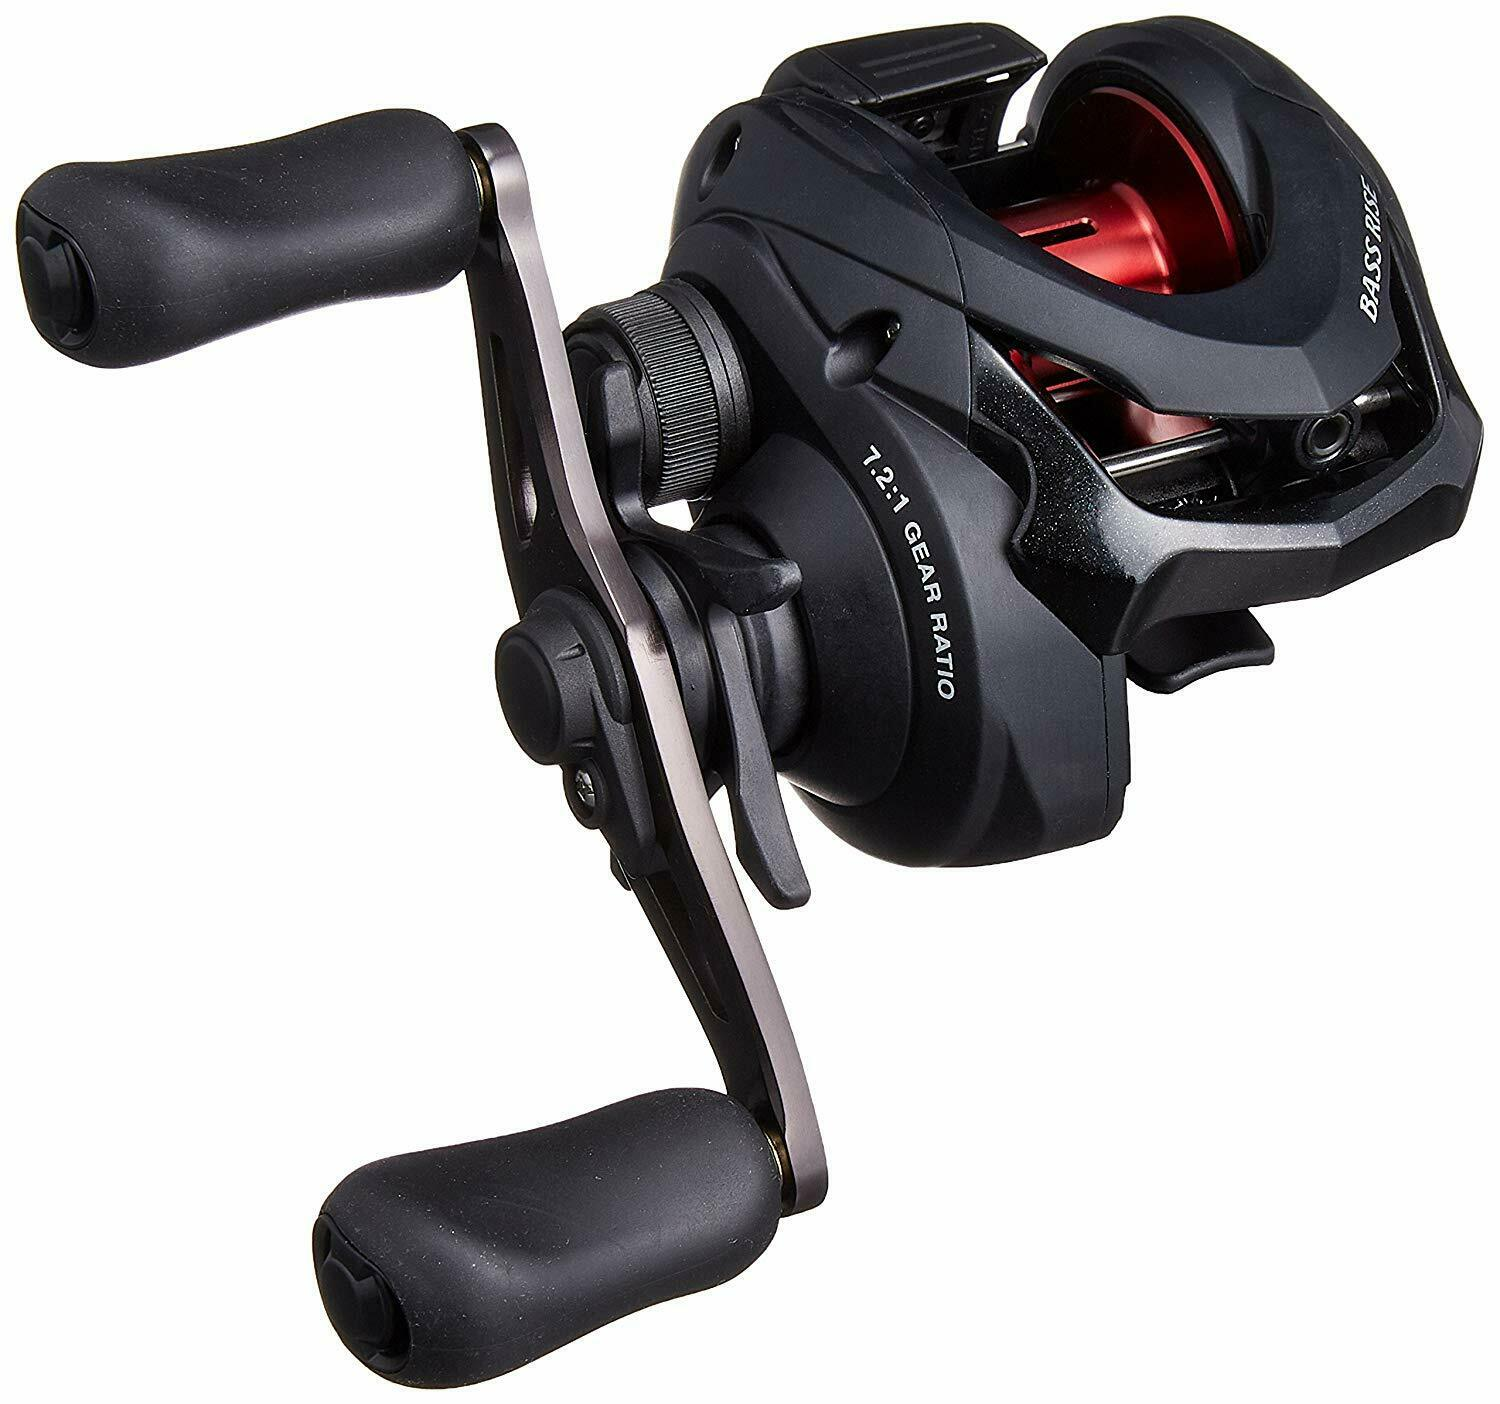 Shiuomoo 18 Bass Rise Right He Saltwater Baitcasting Reel 038869